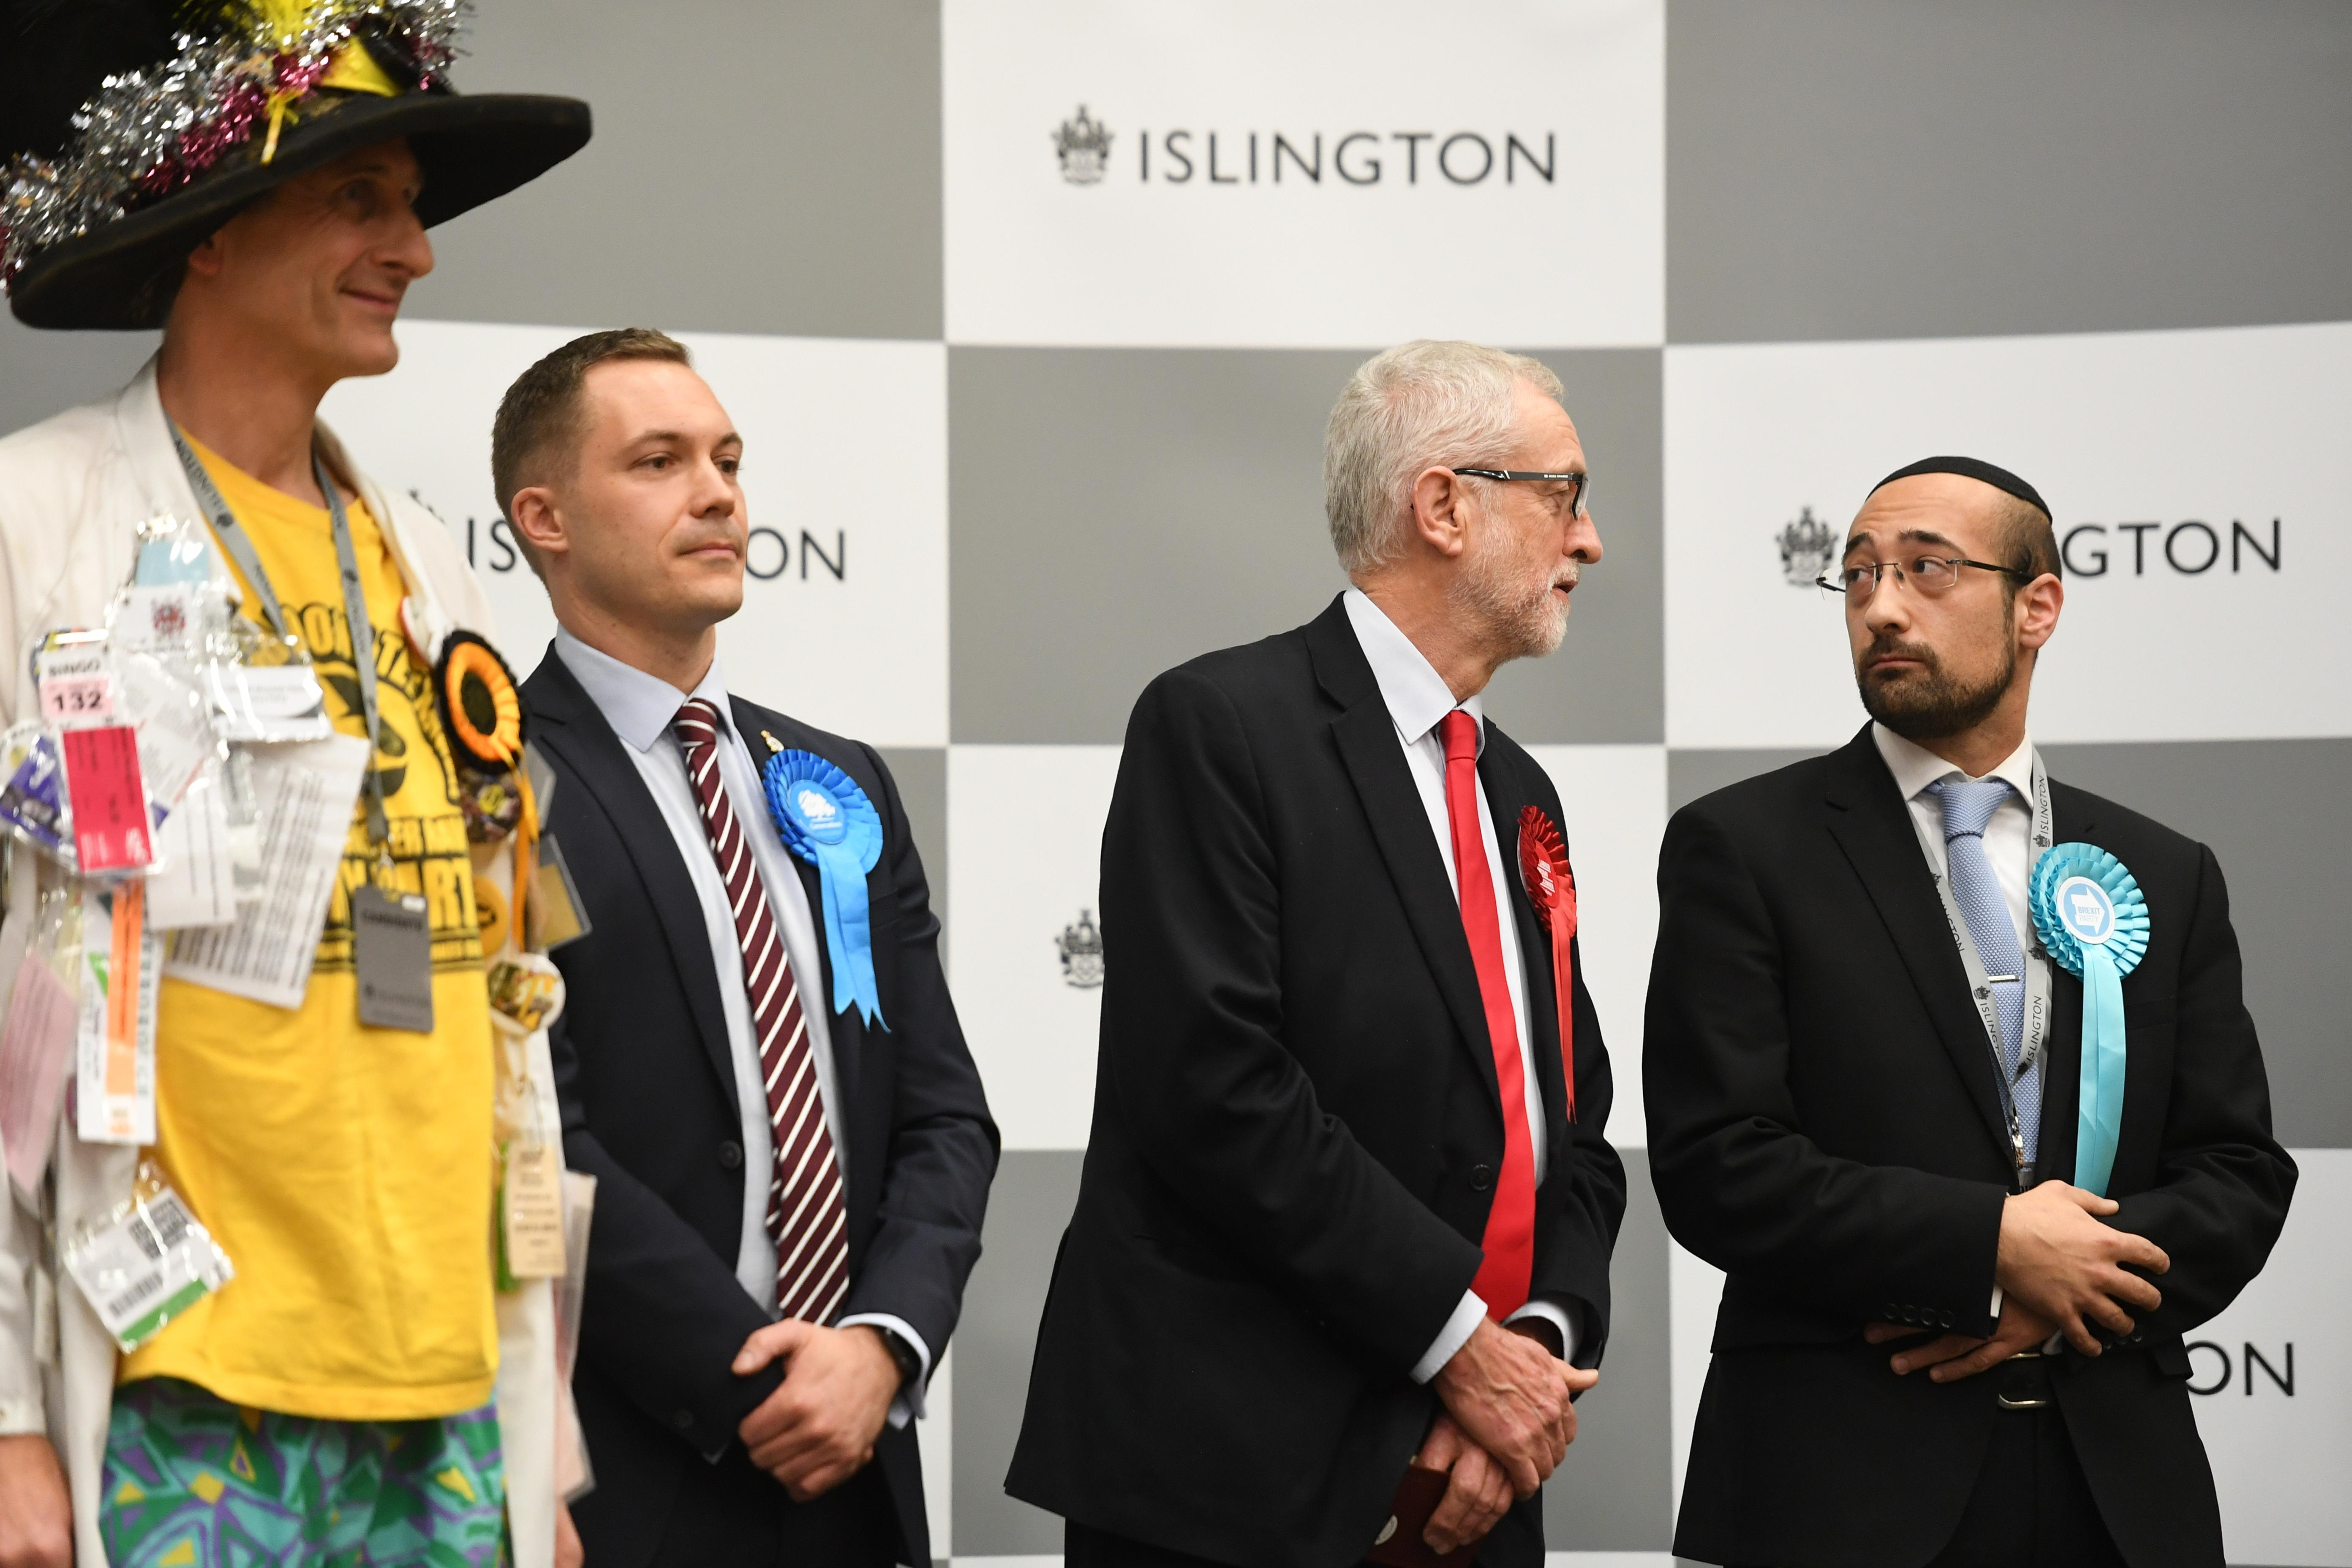 Labour leader Jeremy Corbyn speaks after the results was given at Sobell Leisure Centre for the Islington North constituency for the 2019 General Election. (Photo by Joe Giddens/PA Images via Getty Images)